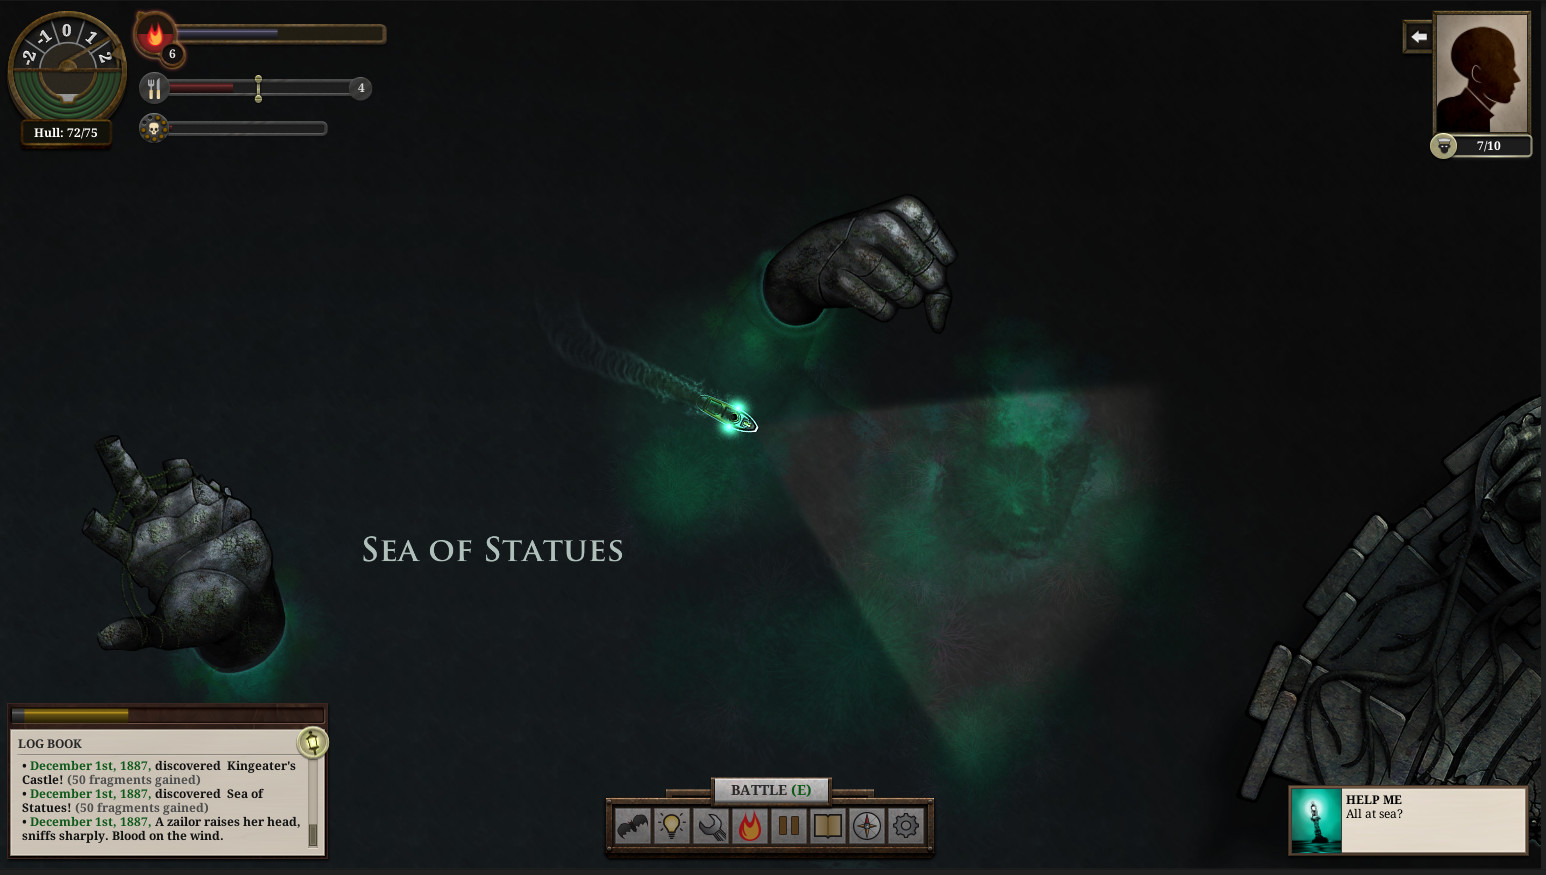 SUNLESS SEA (Steam Gift / RU CIS) РФ и СНГ